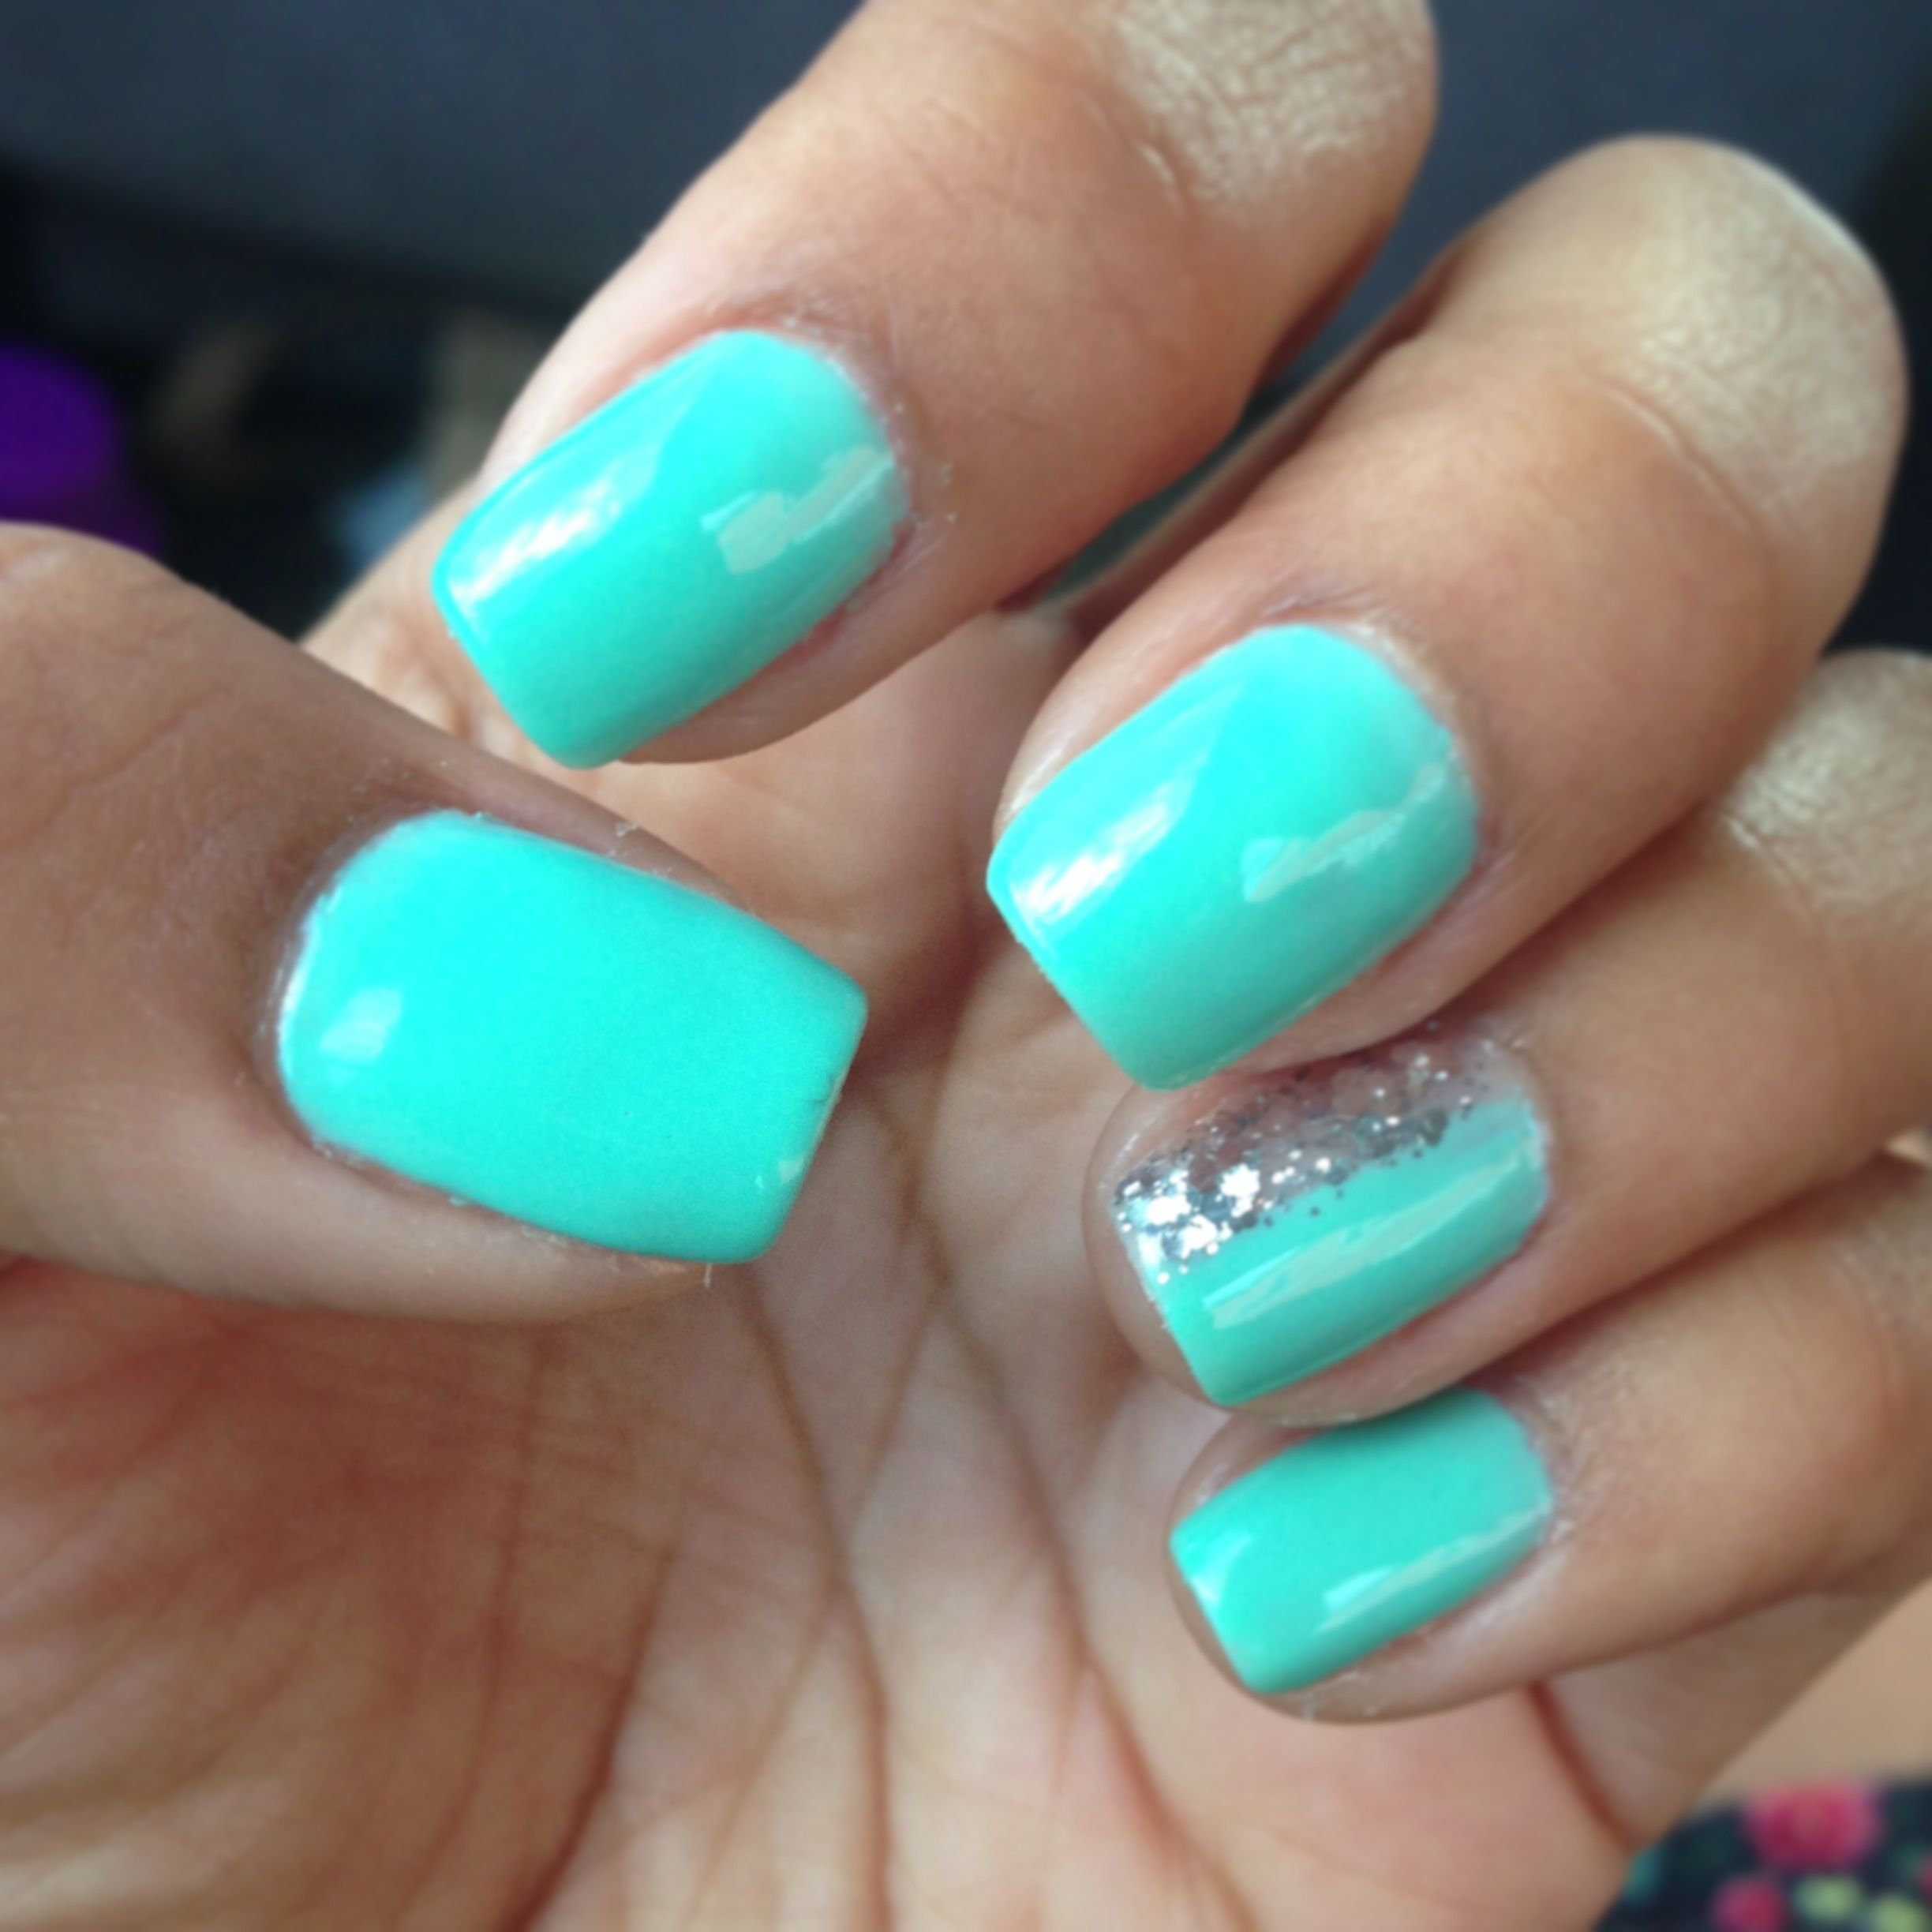 Aqua Nail Art: A Manicure To Try Out Possibly Using Sally's TripleShine